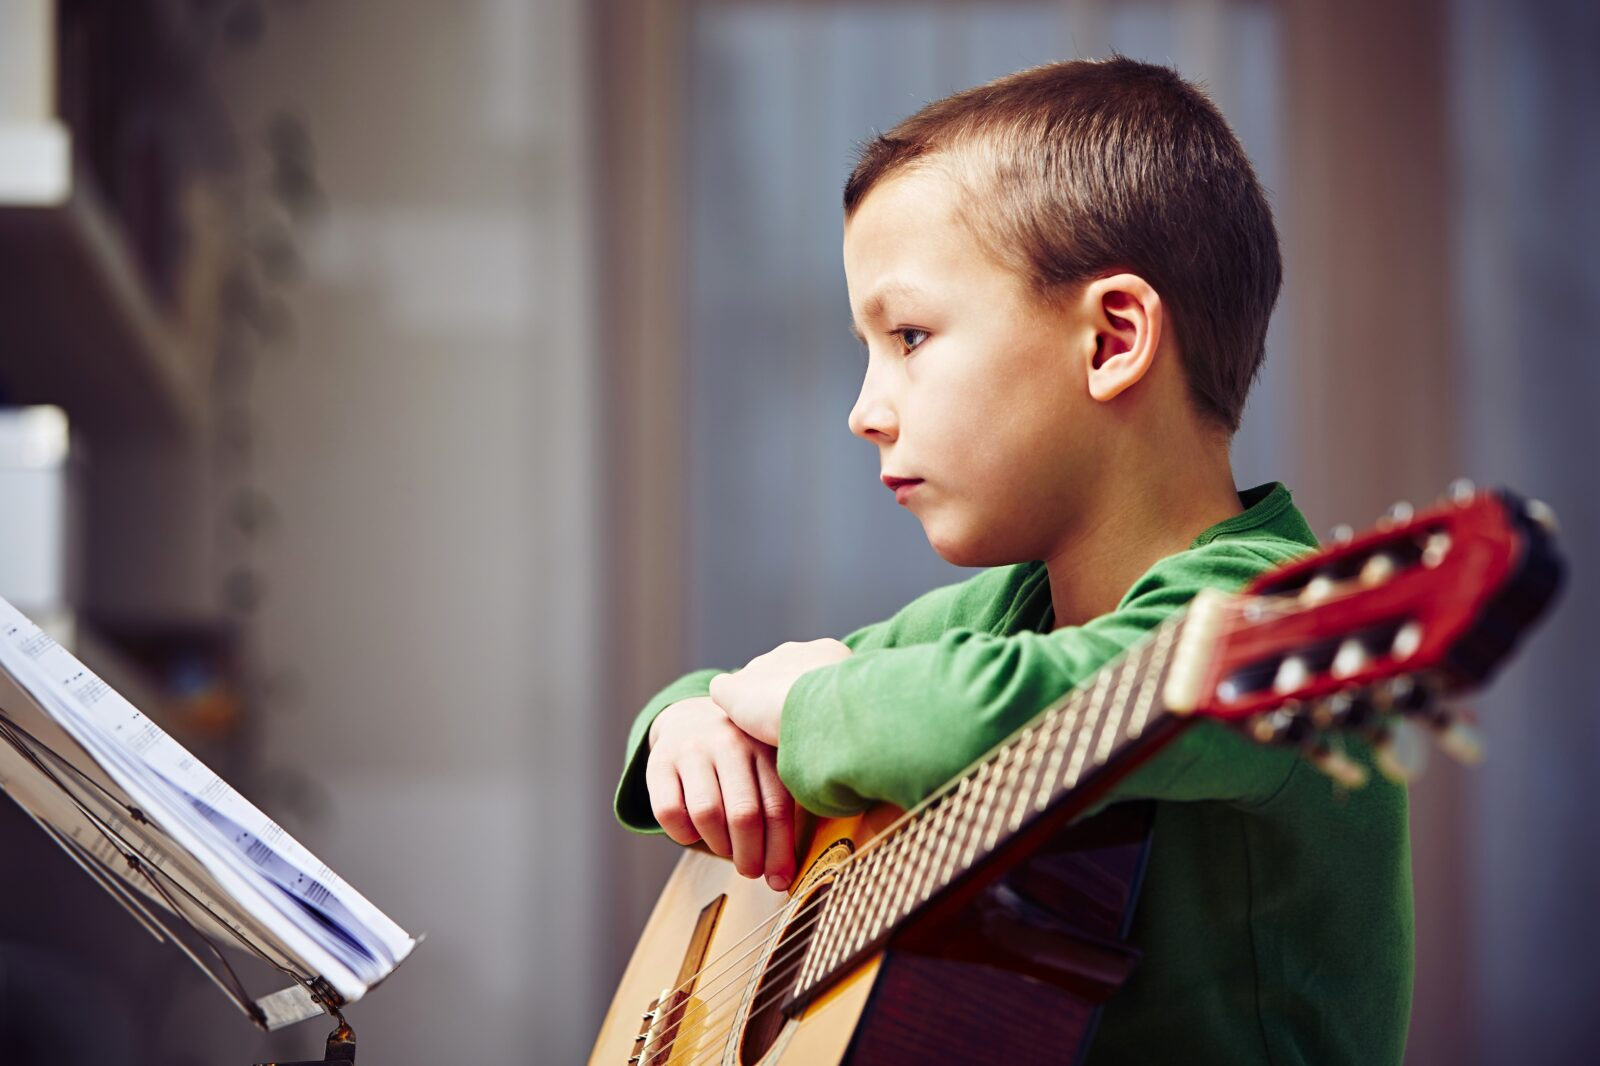 Boy studying his music